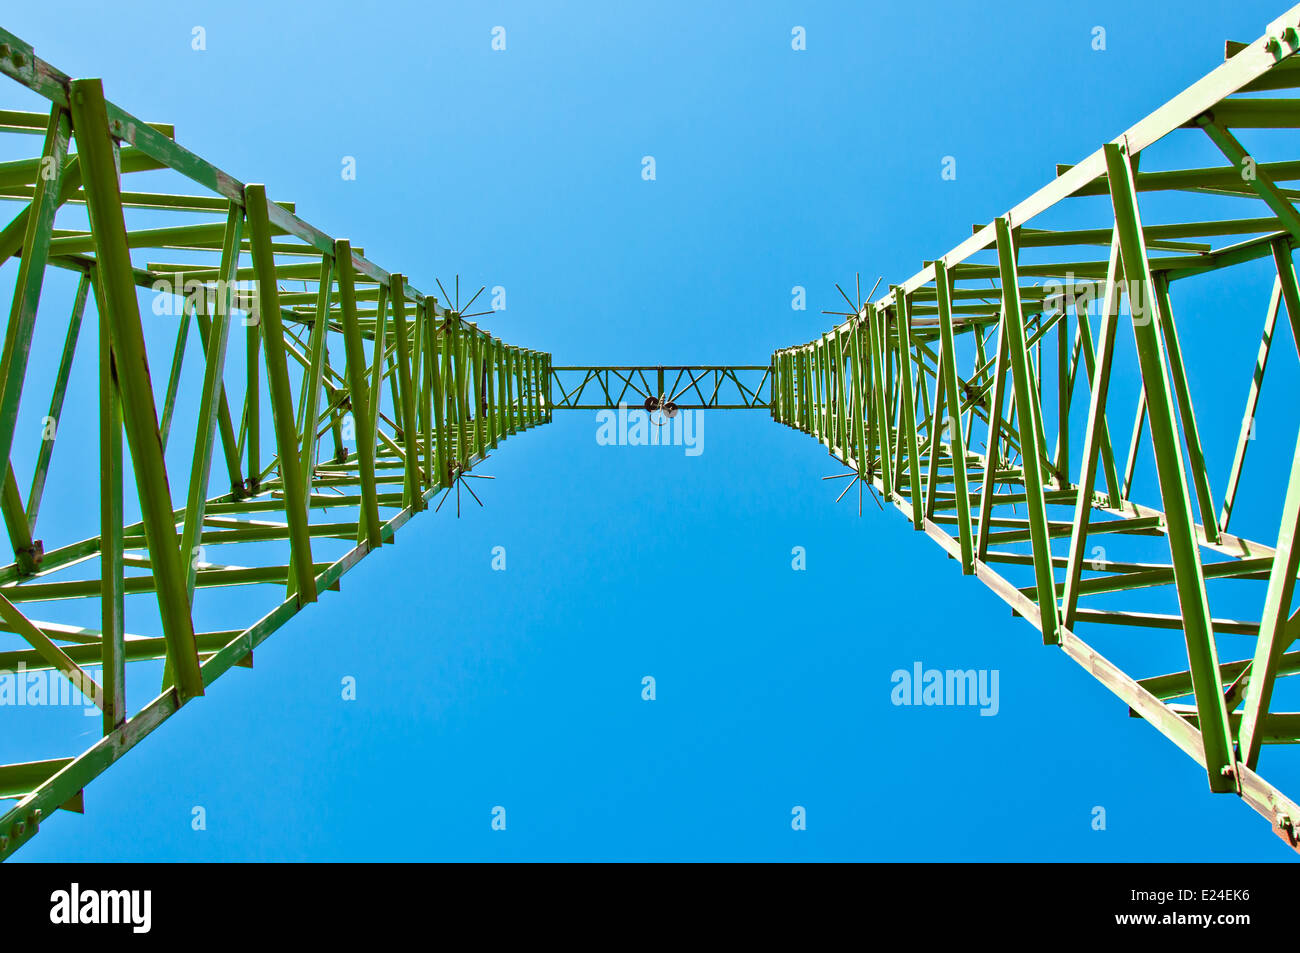 Detail of electricity pylon against blue sky - Stock Image